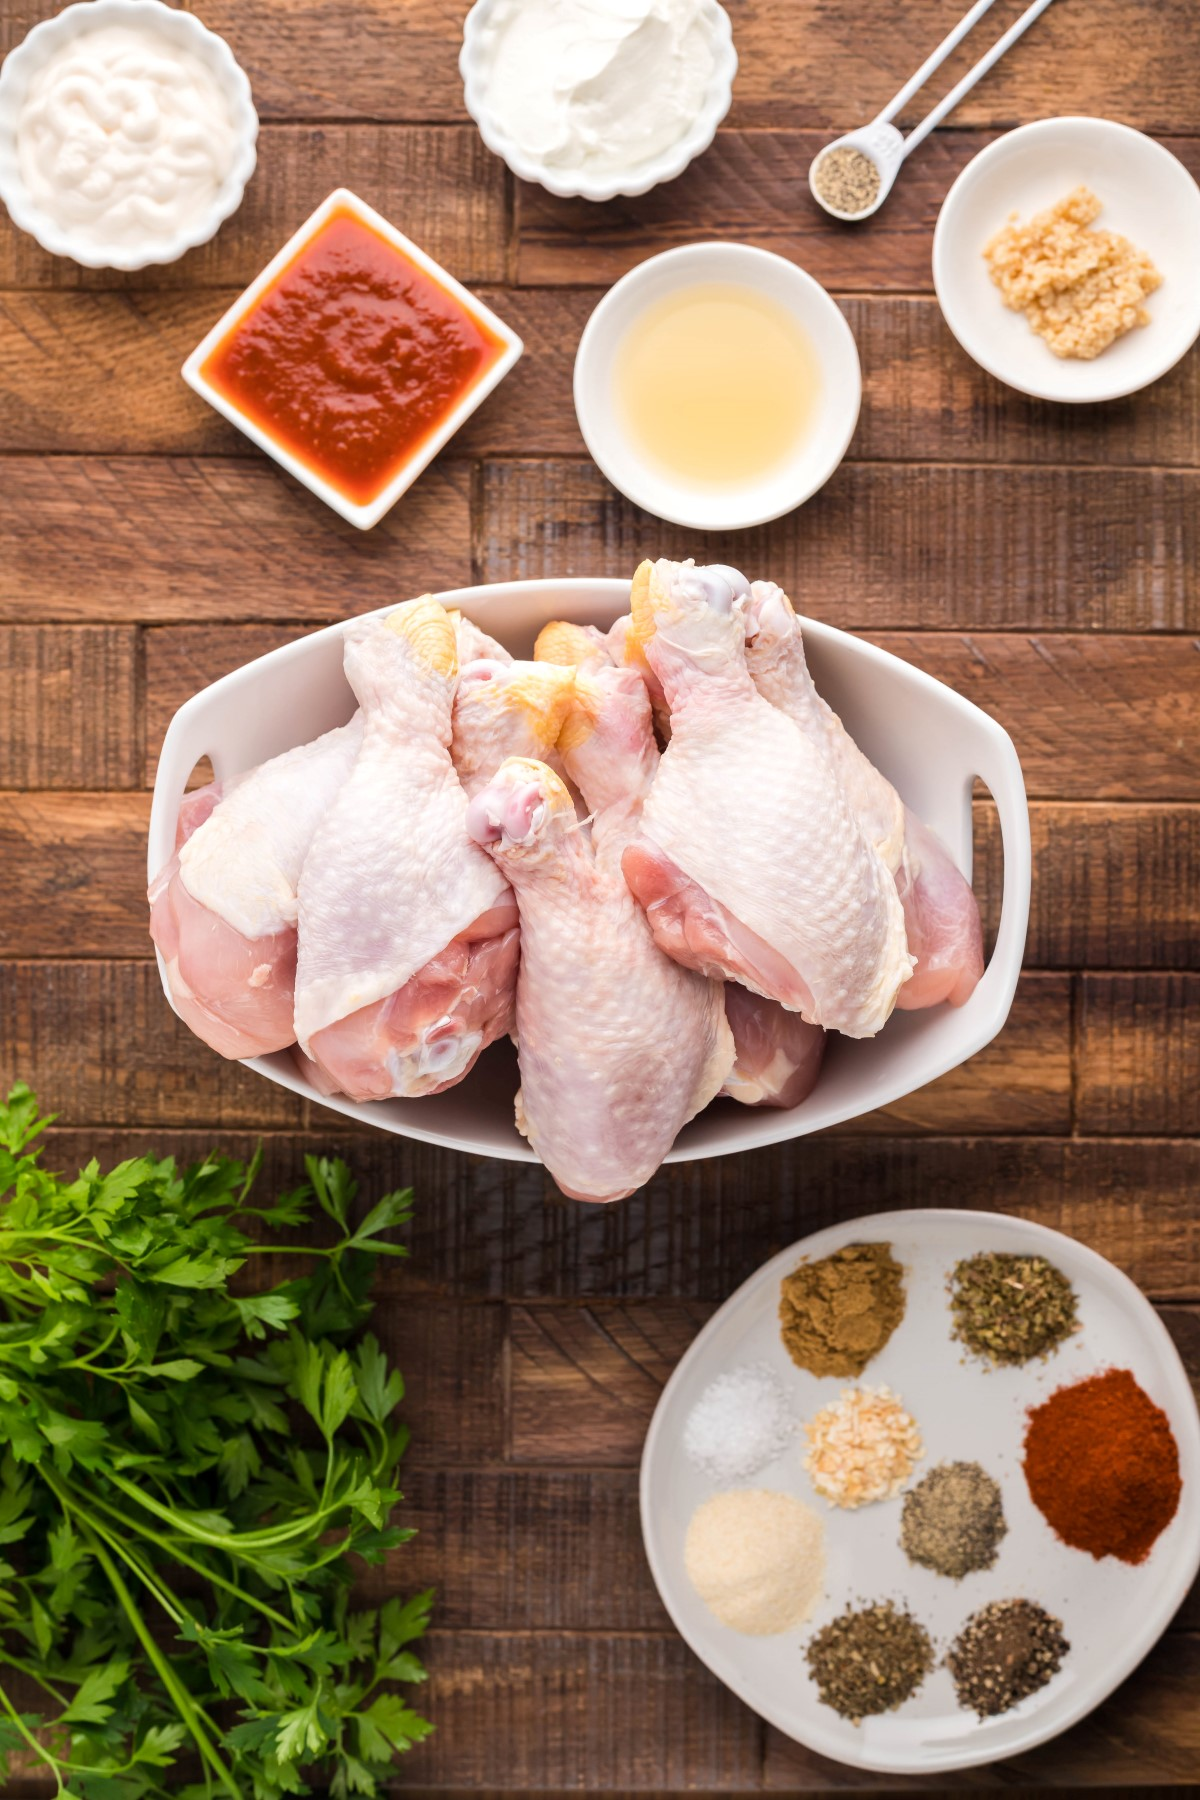 All the ingredients to make dry rub smoked chicken drumsticks on a wooden board, divided into small bowls, plates and spice piles.